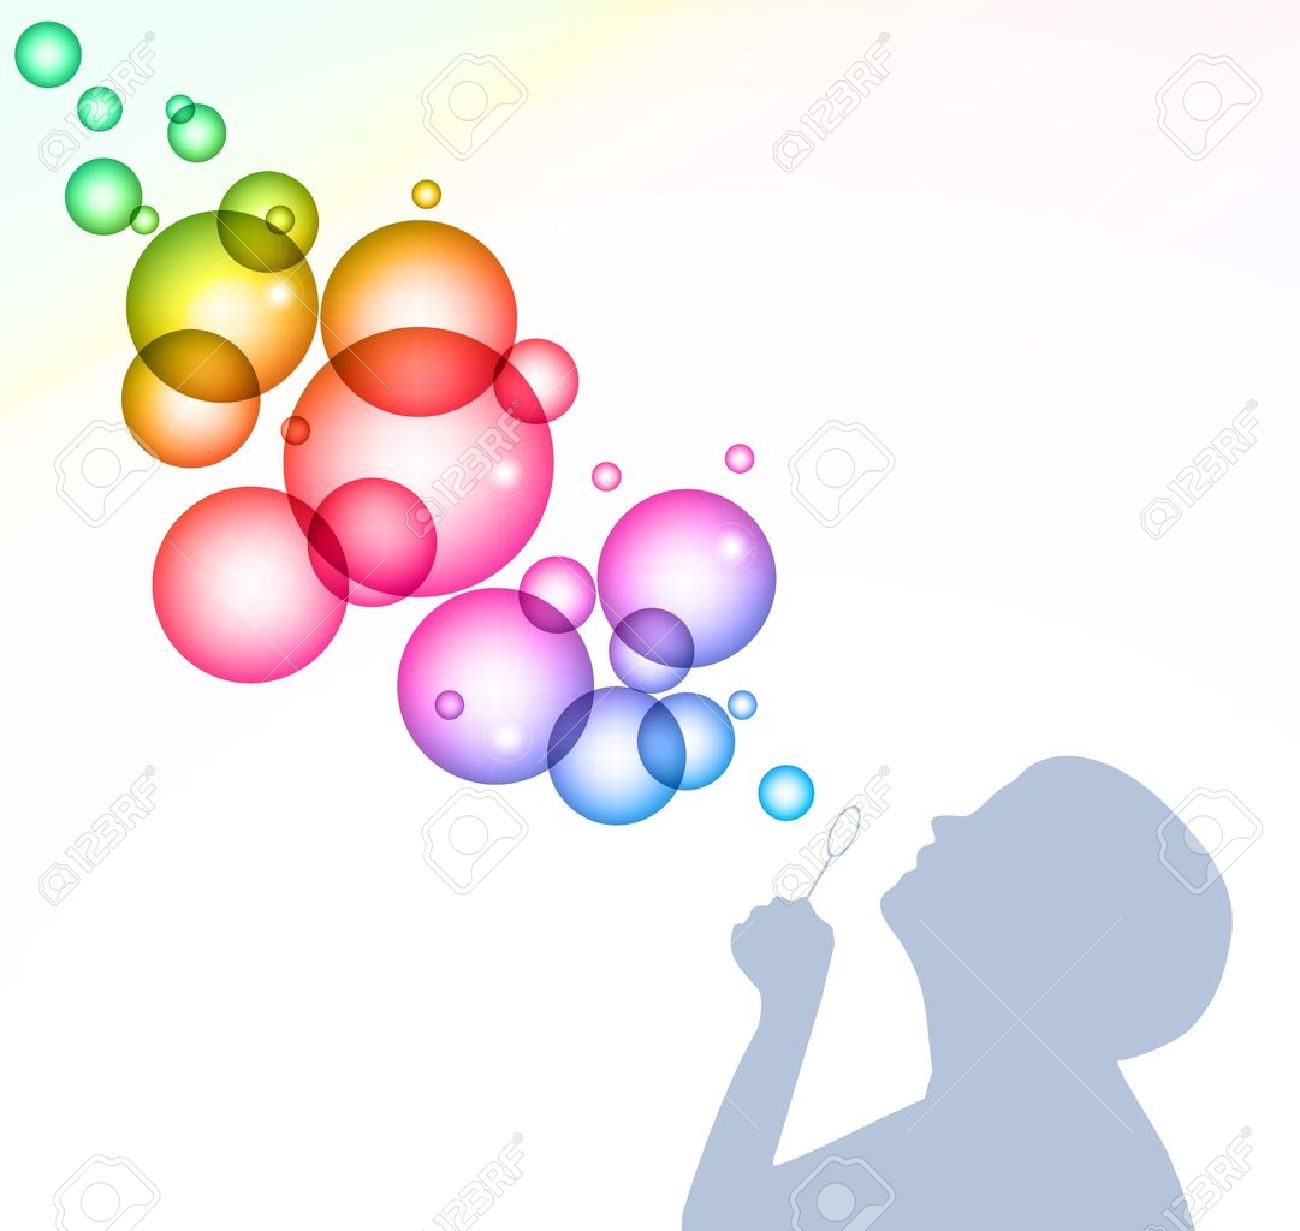 Soap bubble background download free vector art stock graphics - Child Blowing Bubbles Background Stock Vector 14791330